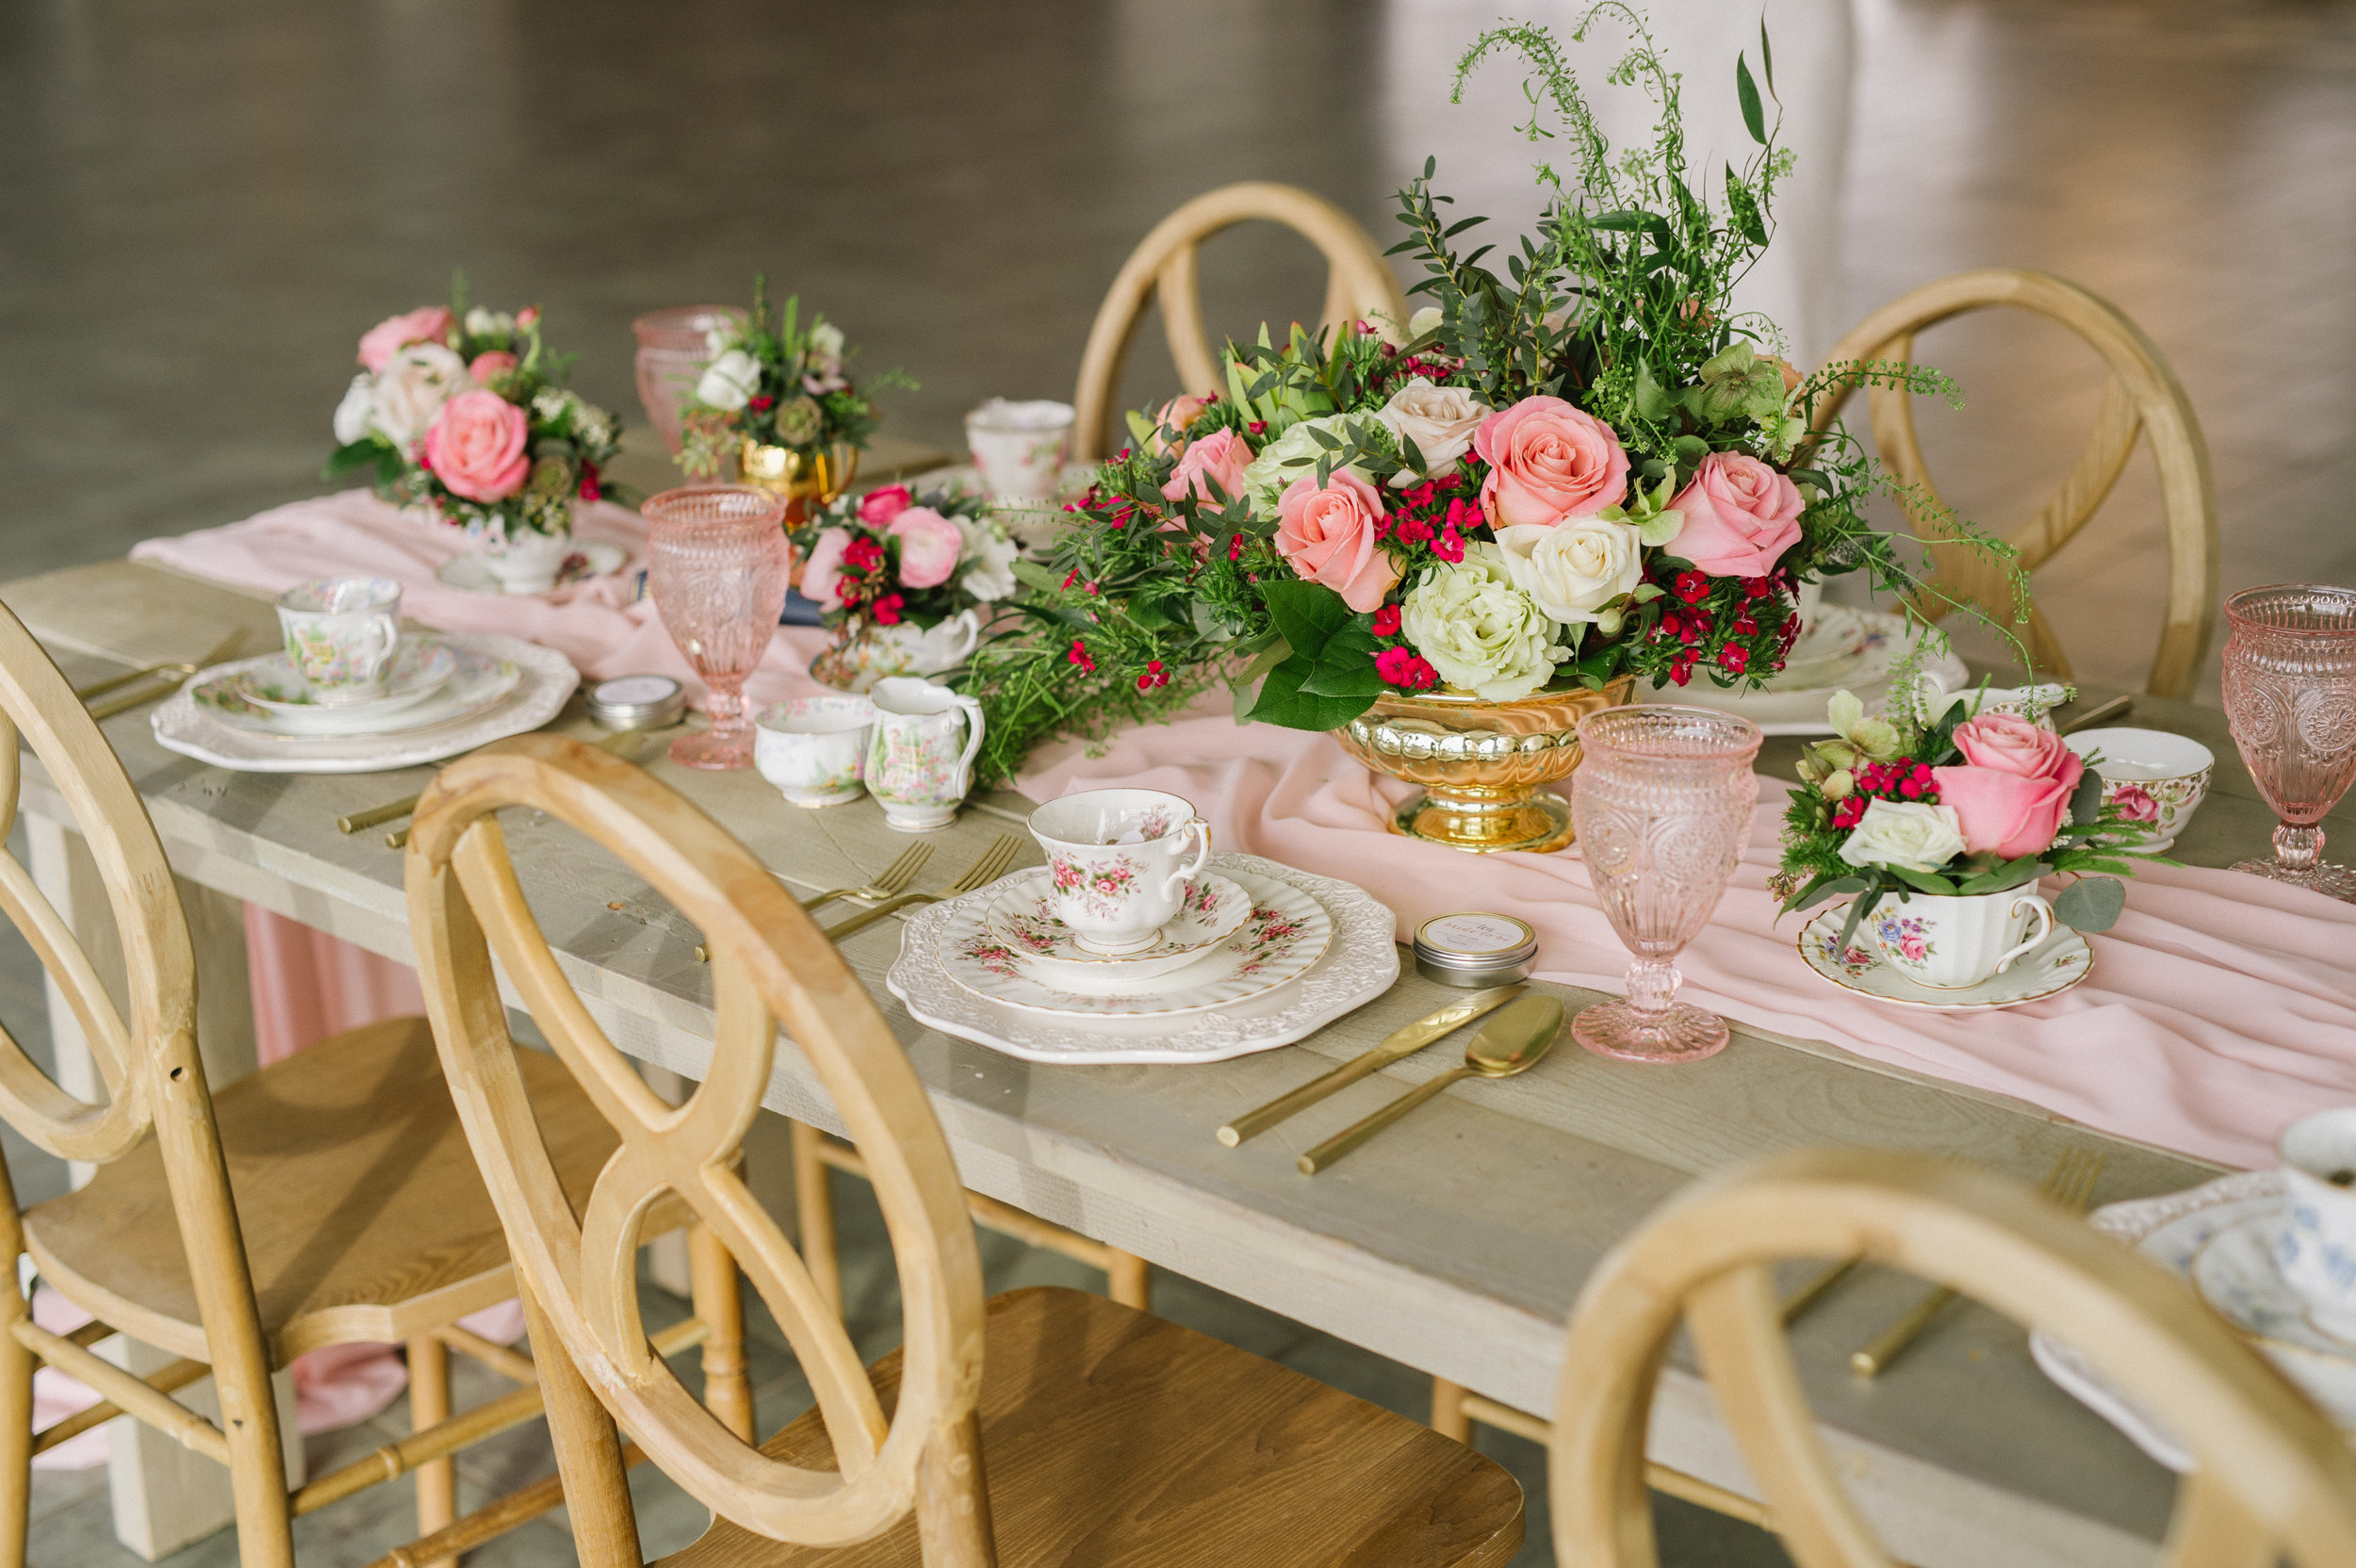 Calgary_Wedding_Photography_Spruce_Meadows_Bridal_Tea_2018_HR052.jpg